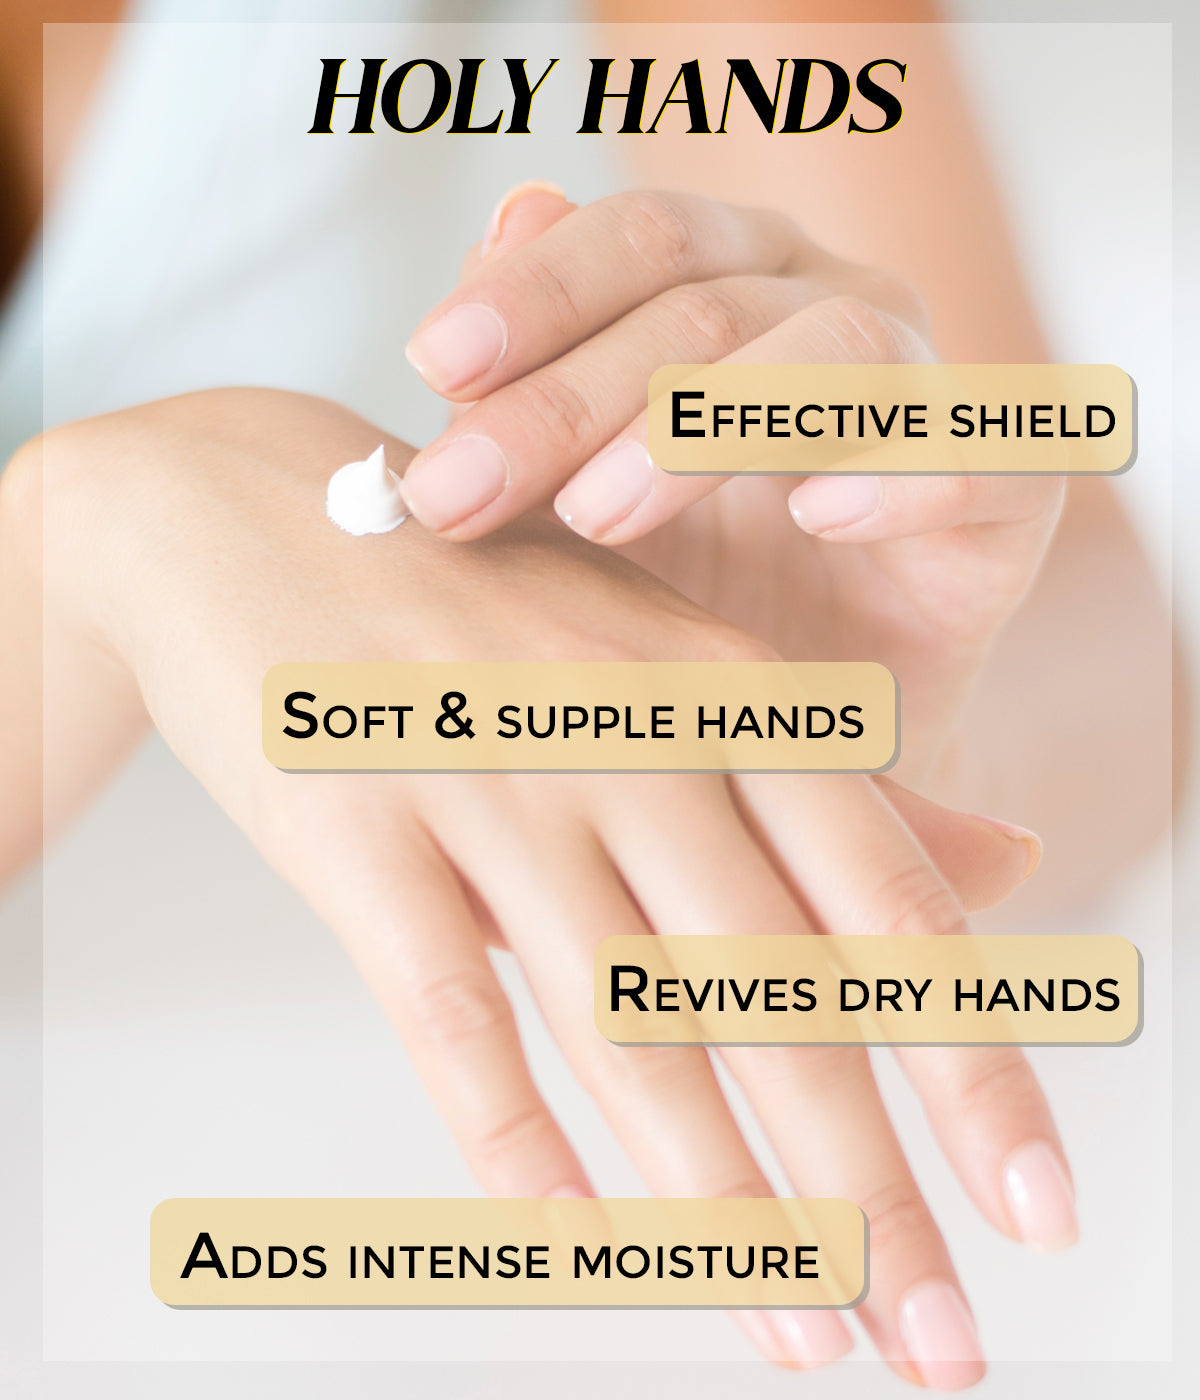 This is an image of hand care in 2021